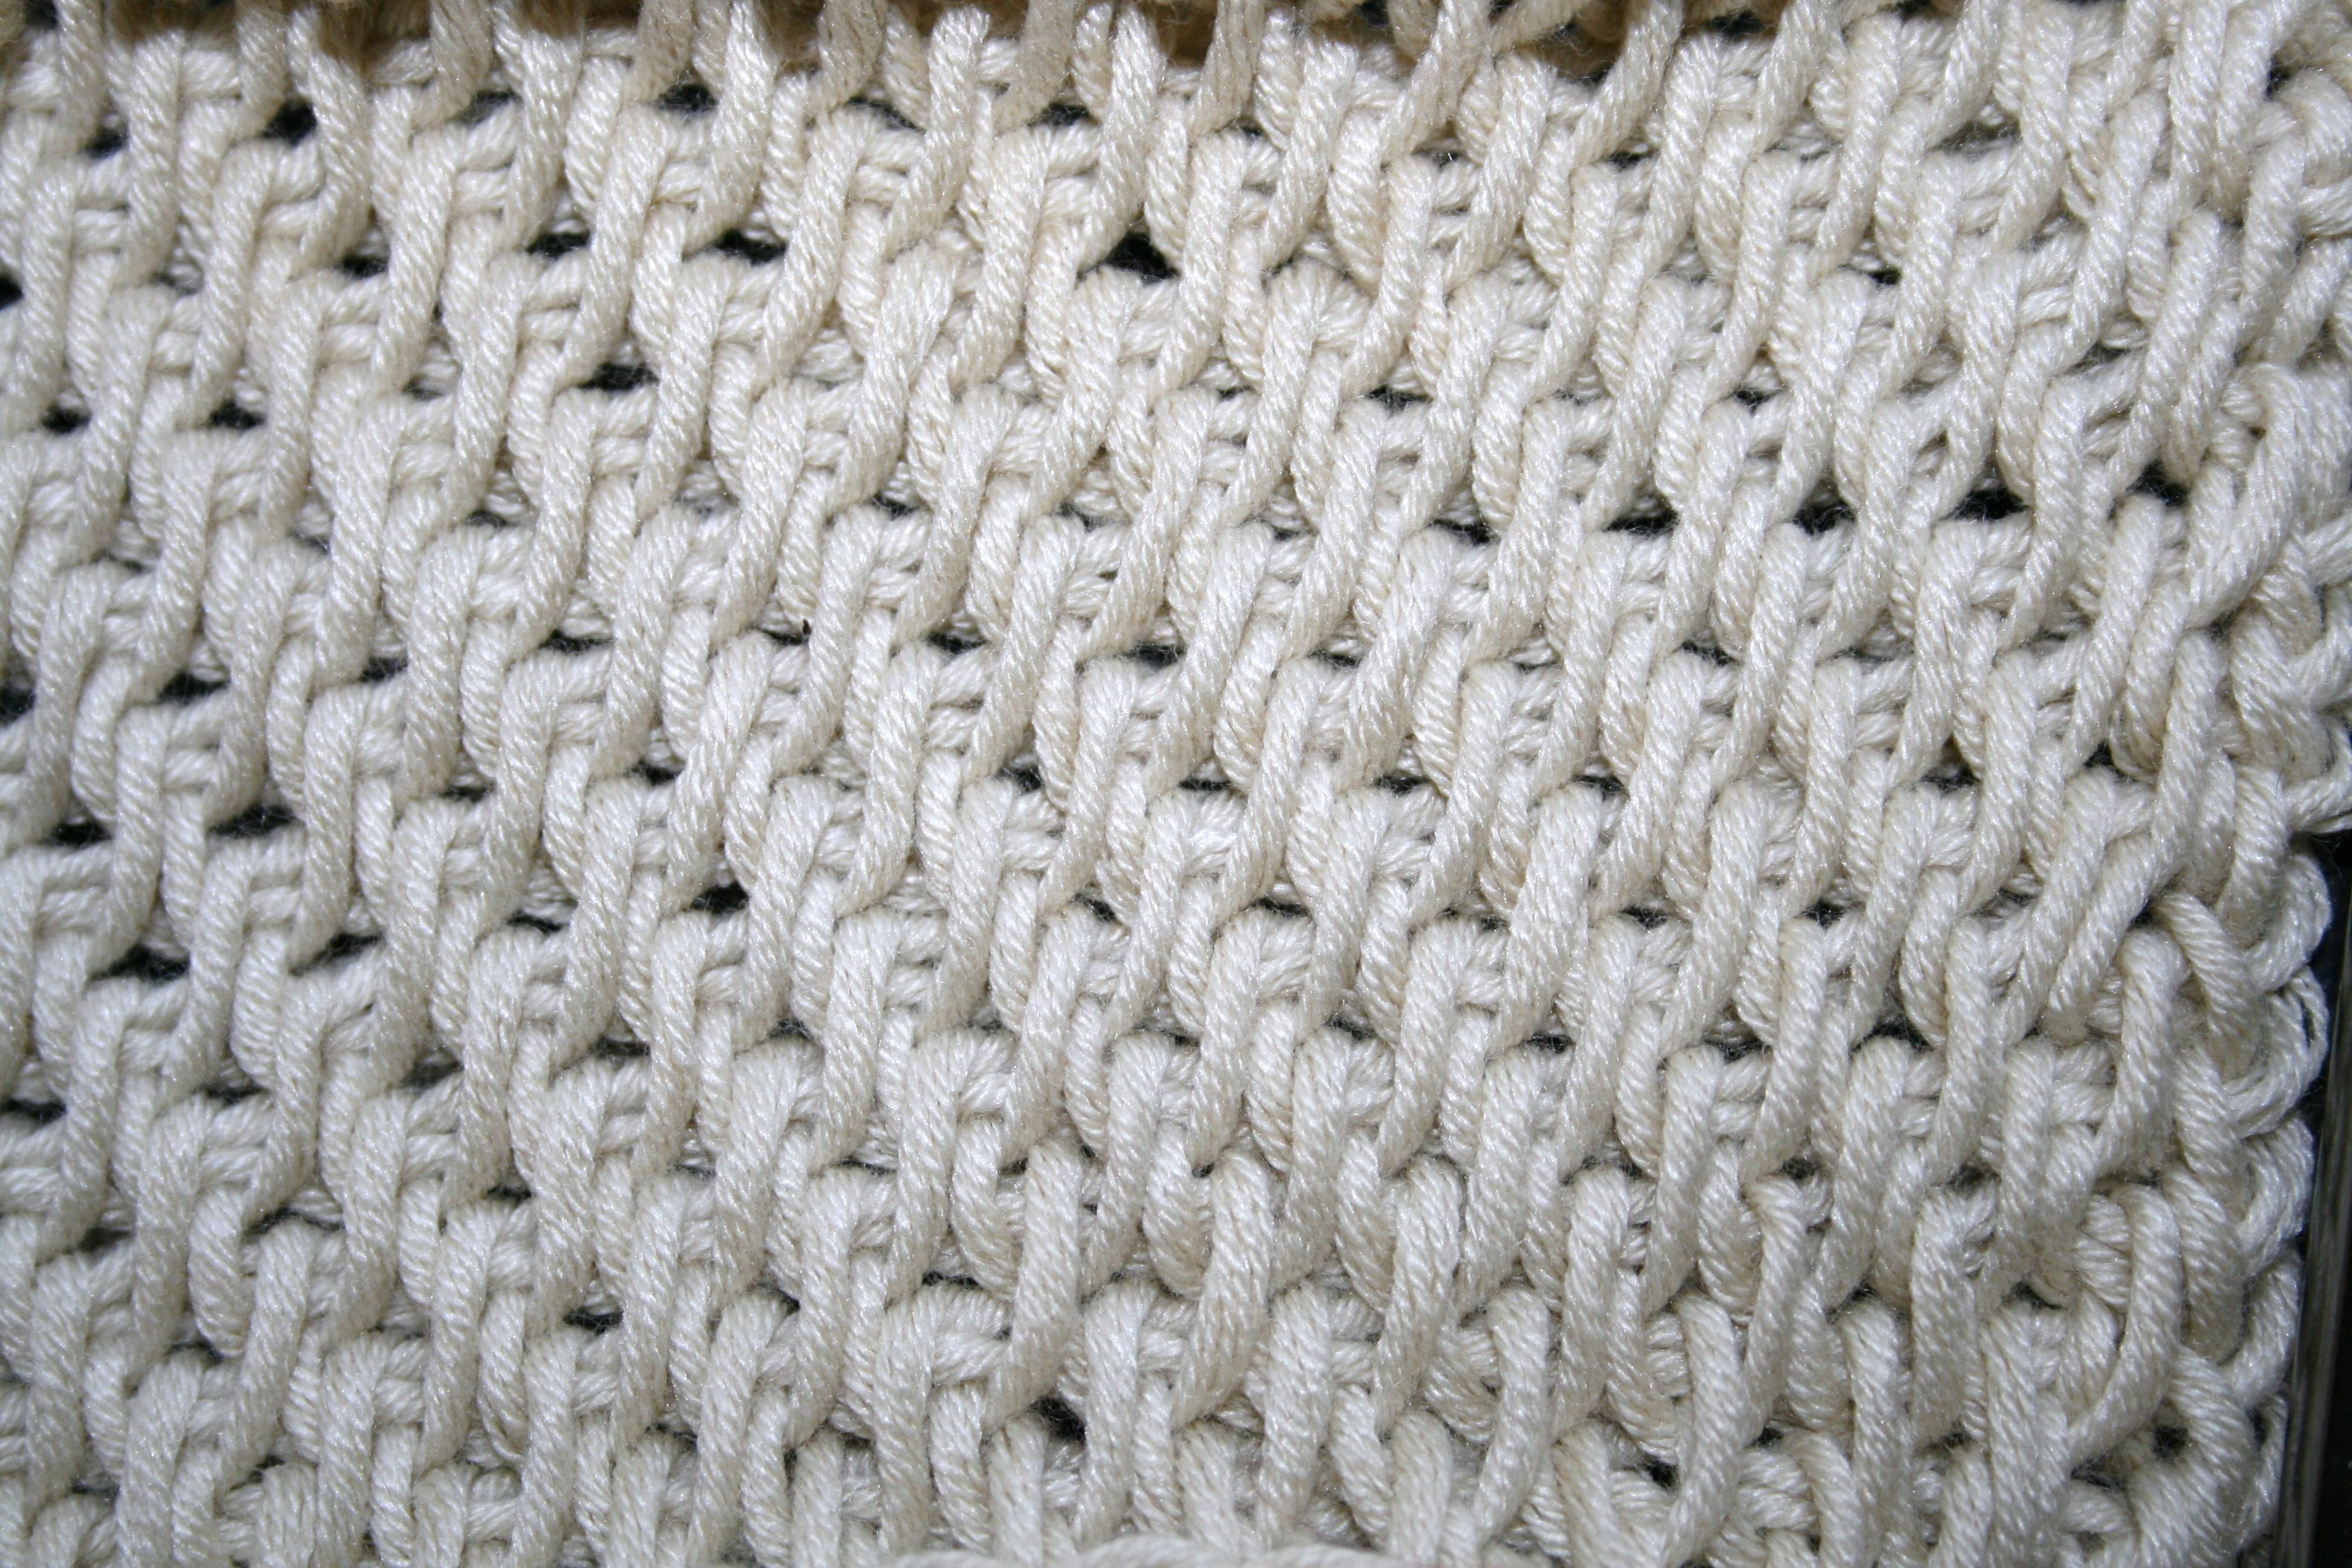 Lovely Tunisian Full Stitch Tunisian Crochet Knit Stitch Of Superb 46 Pictures Tunisian Crochet Knit Stitch